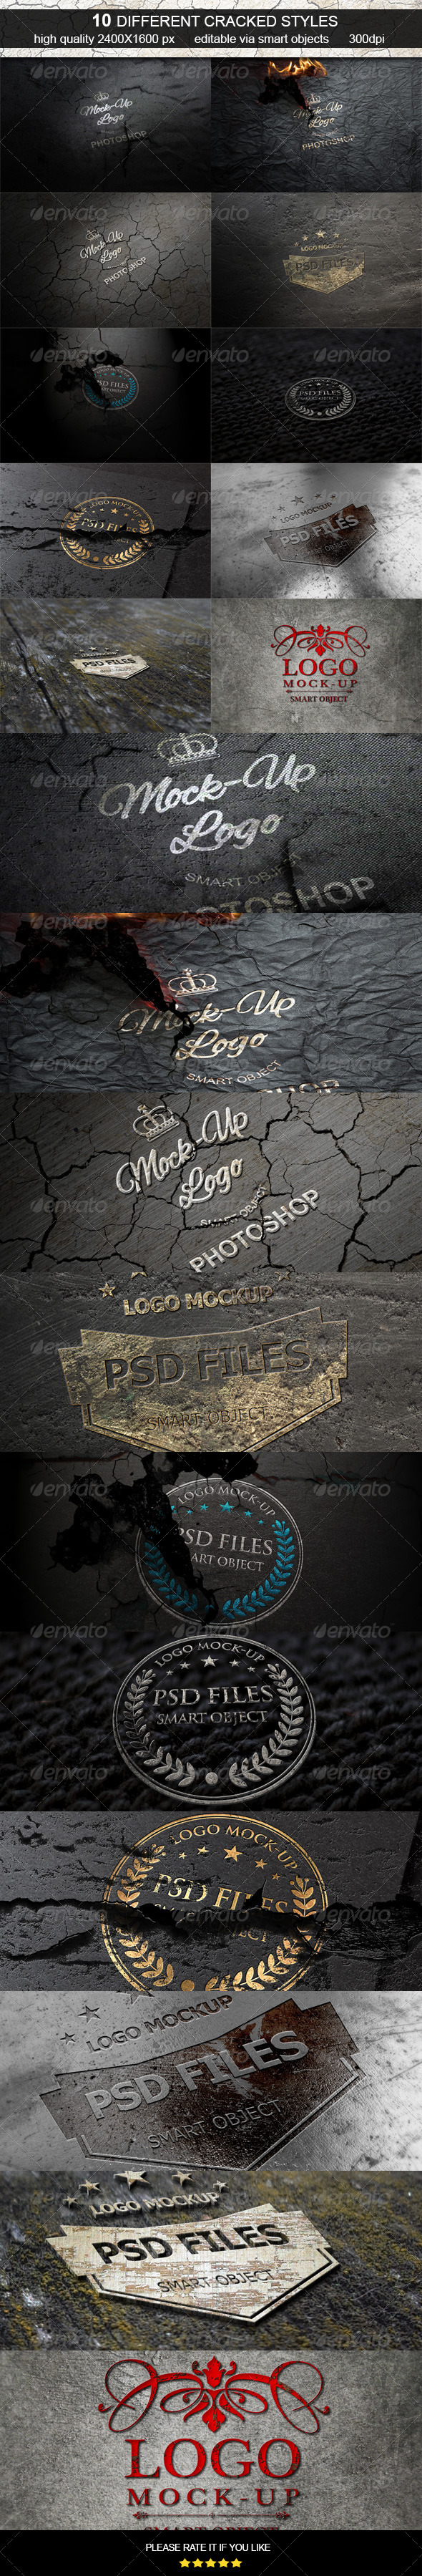 GraphicRiver Cracked Logo Mock-Up 6827561